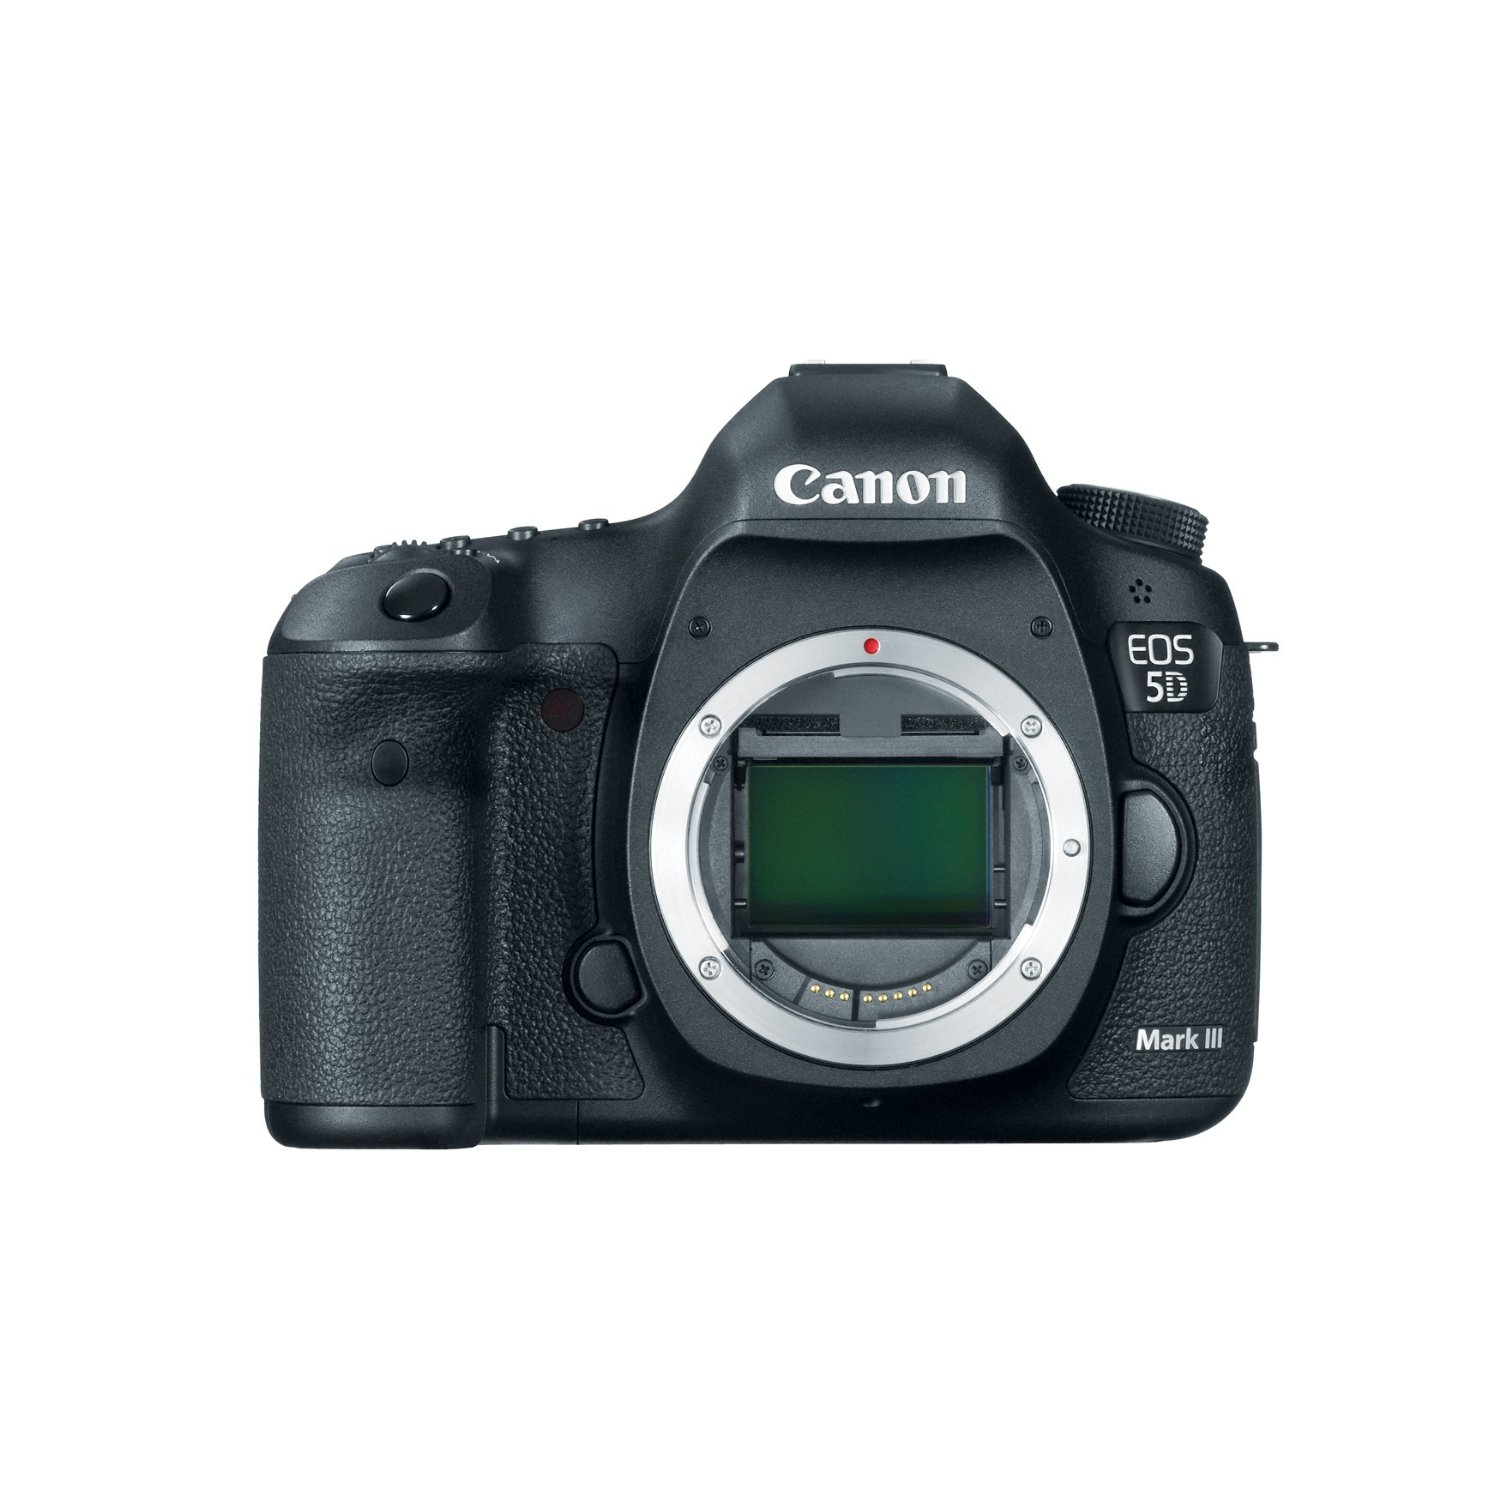 Review canon eos 5d mark iii for Canon eos 5d full frame